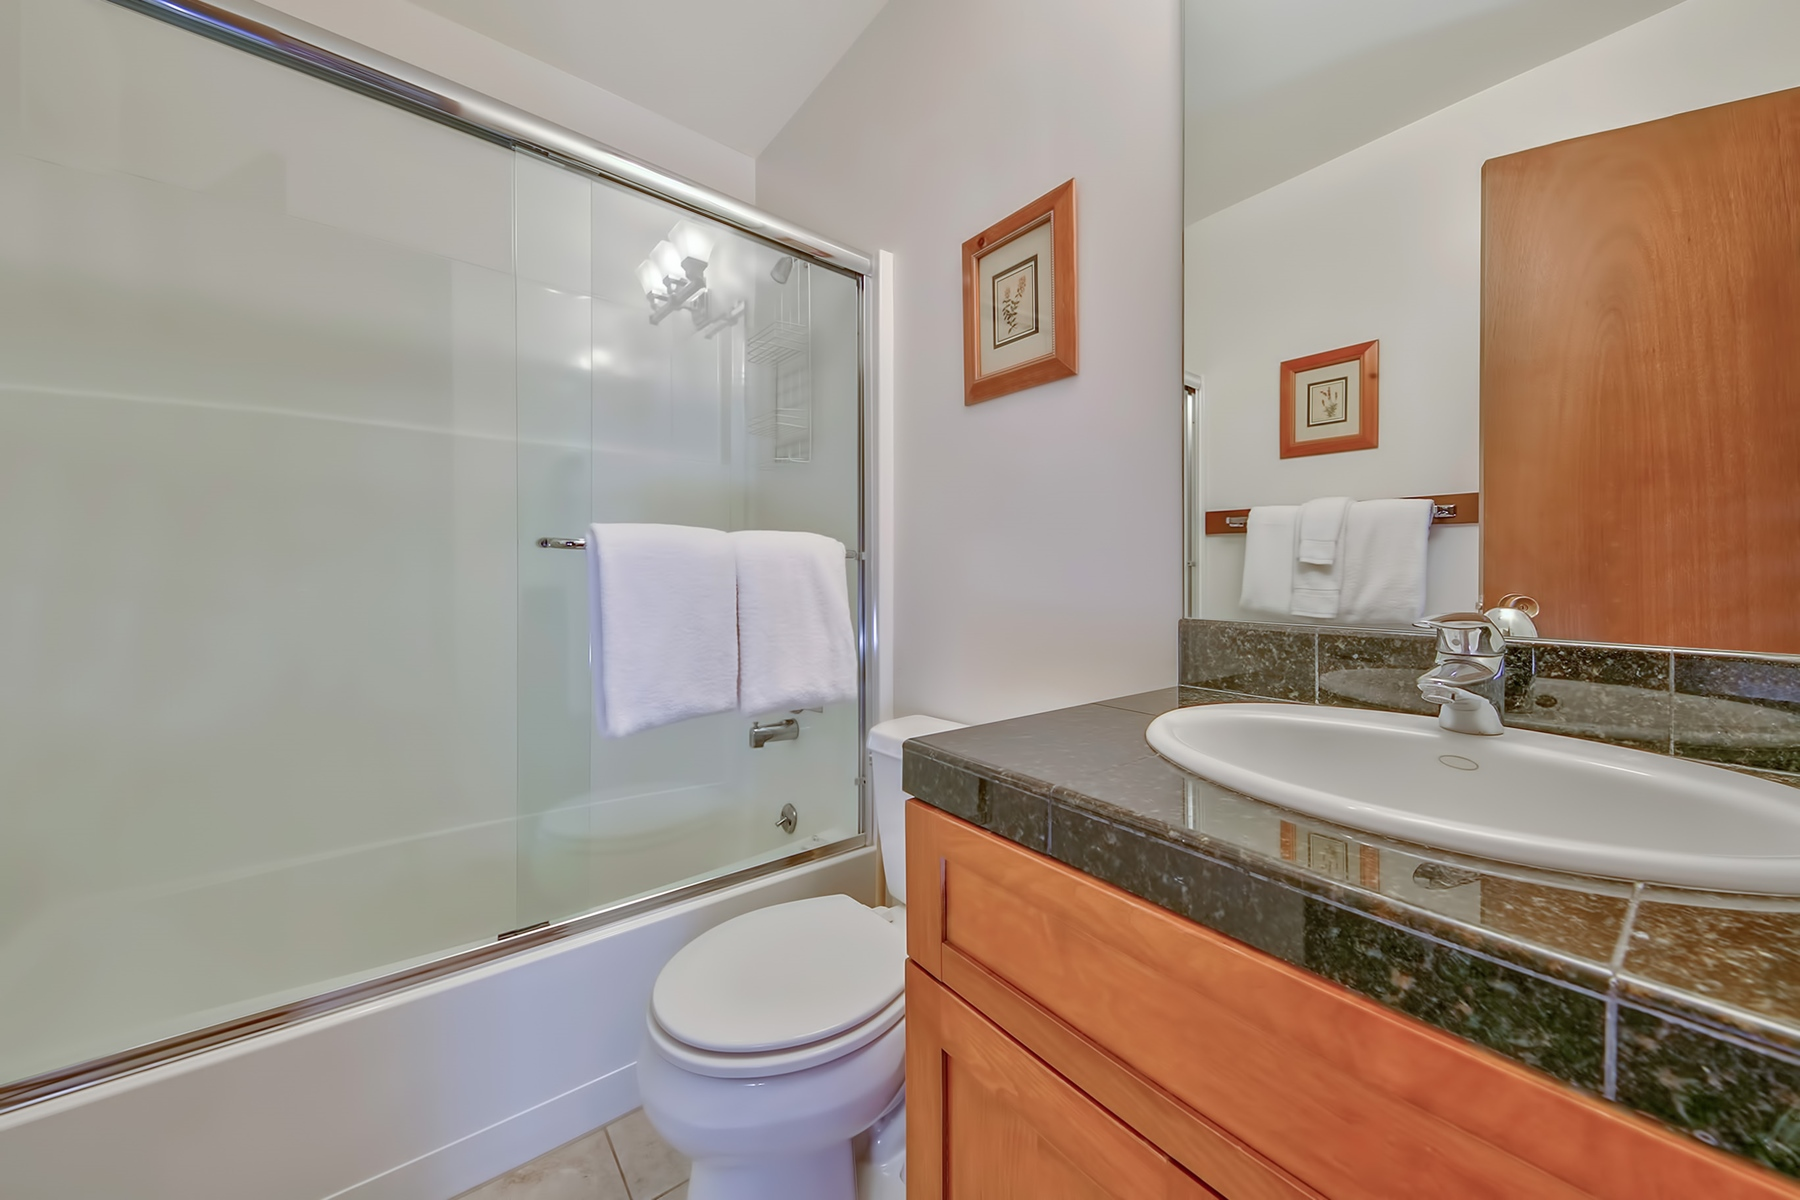 Additional photo for property listing at 9200 Brockway Springs Drive #2, Kings Beach, CA 9200 Brockway Springs Drive #2 Kings Beach, California 96143 United States